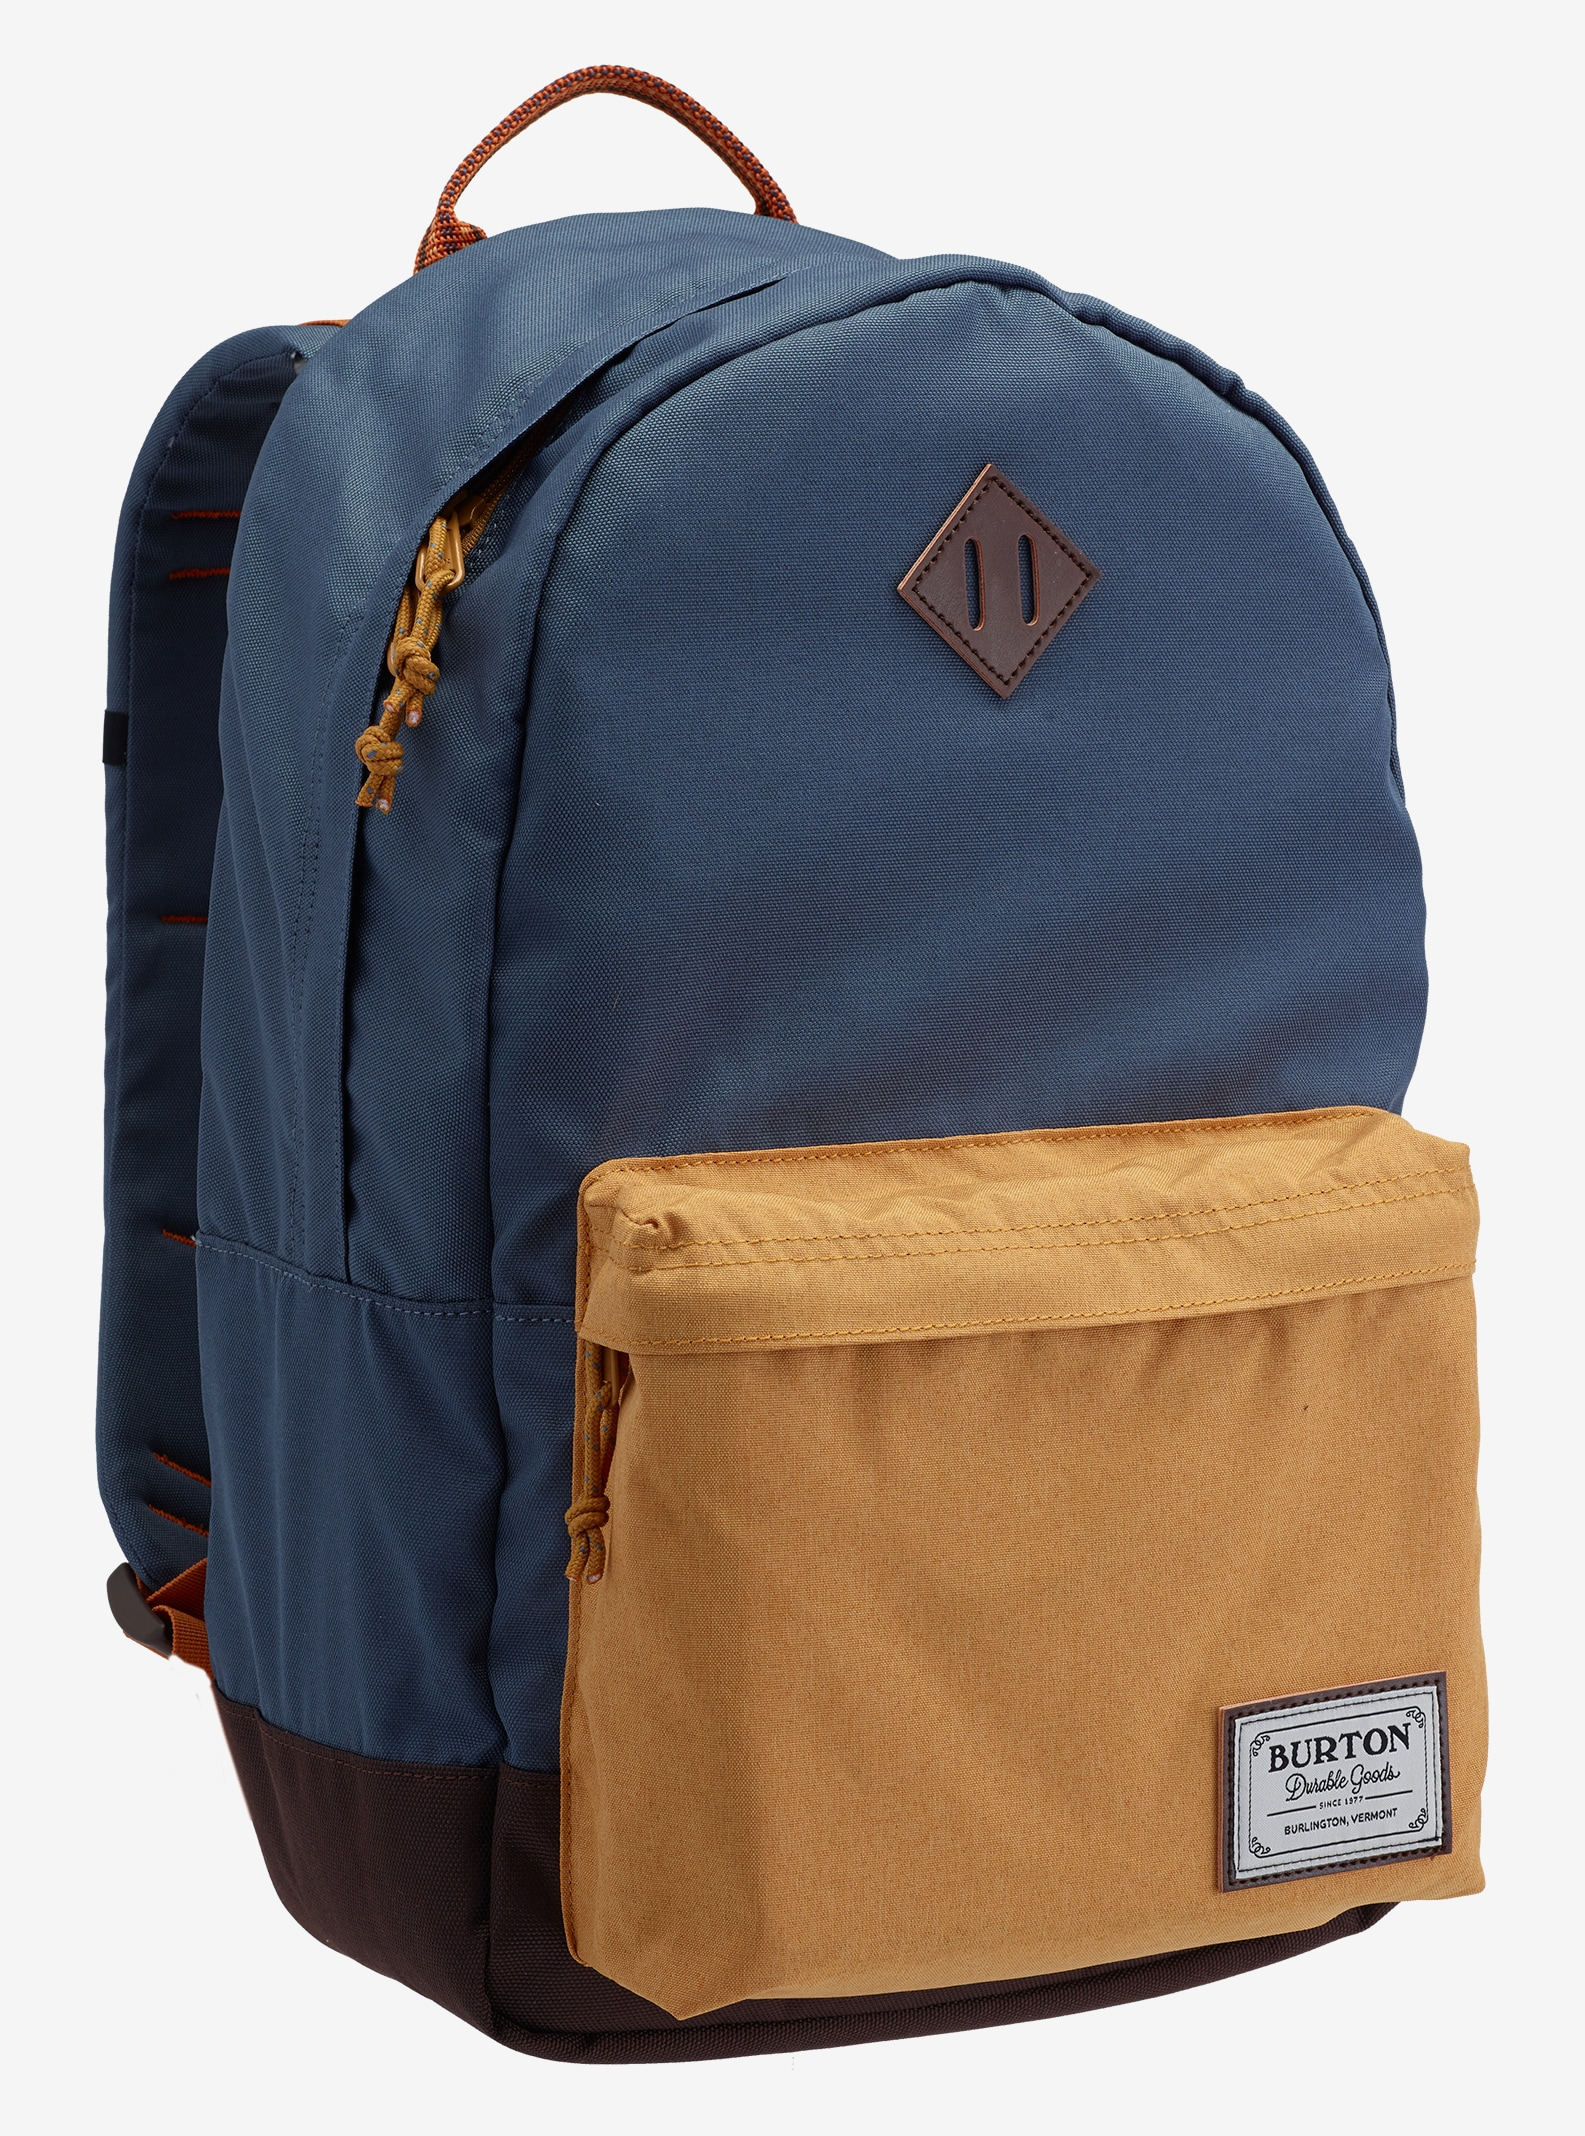 Burton Kettle Backpack shown in Washed Blue